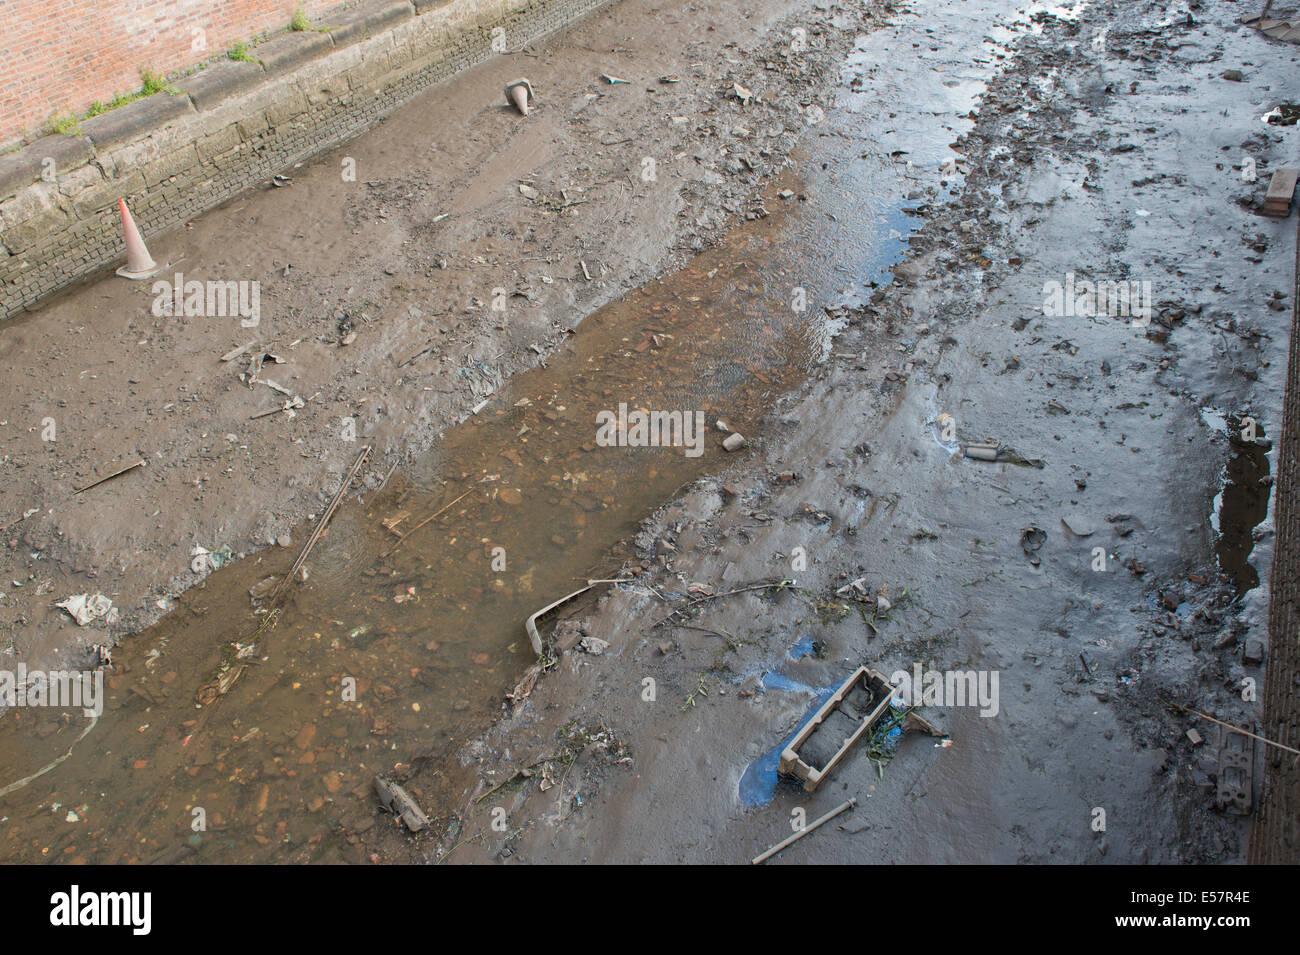 Vandals drained a part of the Rochdale canal near to the Ancoats area of Manchester, UK. - Stock Image